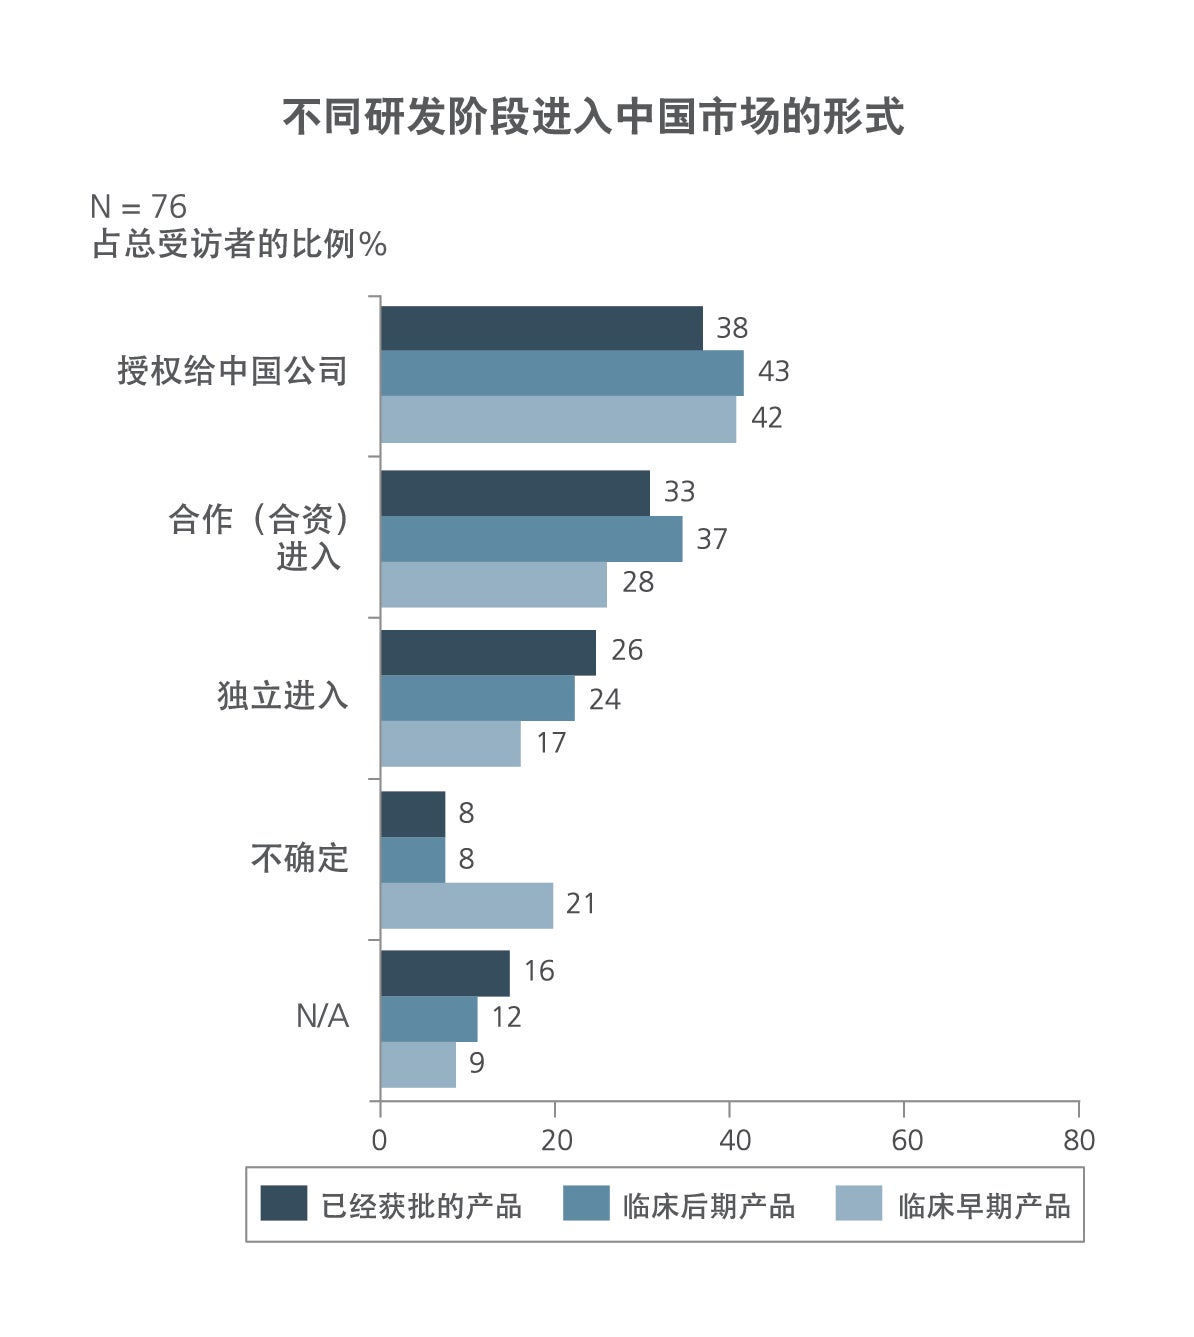 China entry preferences by stage